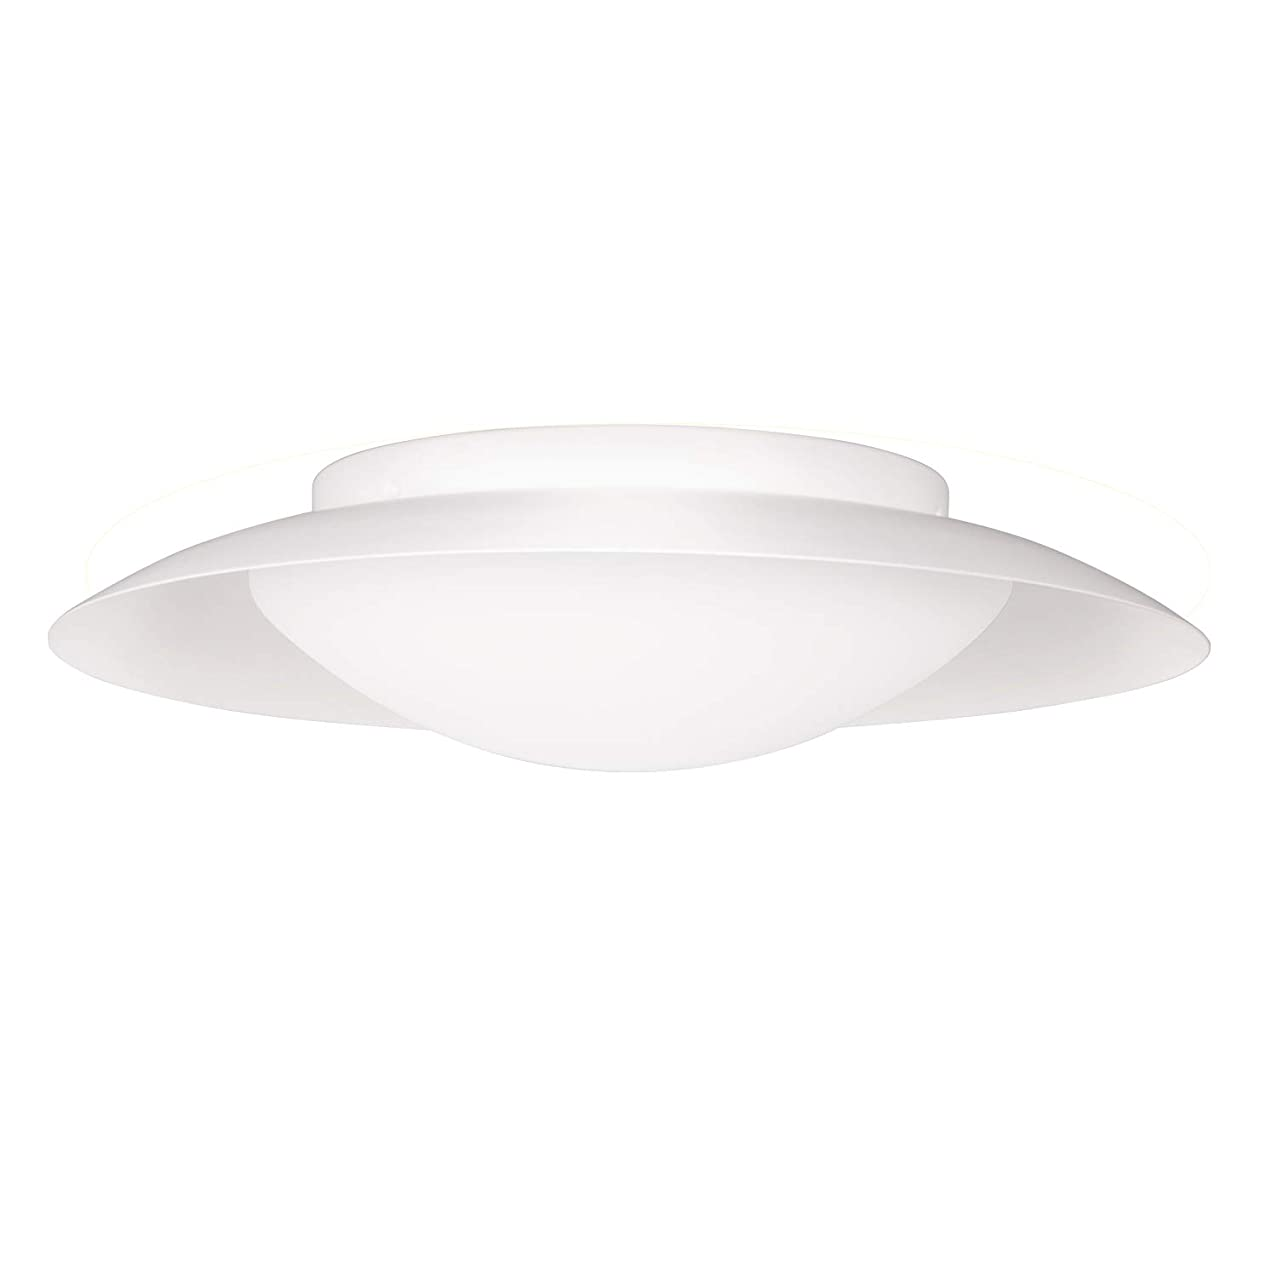 GetInLight LED Flush Mount Ceiling Light, 18-Inch, 30W(150W Equivalent), White Finish, 4000K(Bright White), Dimmable, Round, Wet Location Rated, ETL Listed, IN-0318-4-WH-40